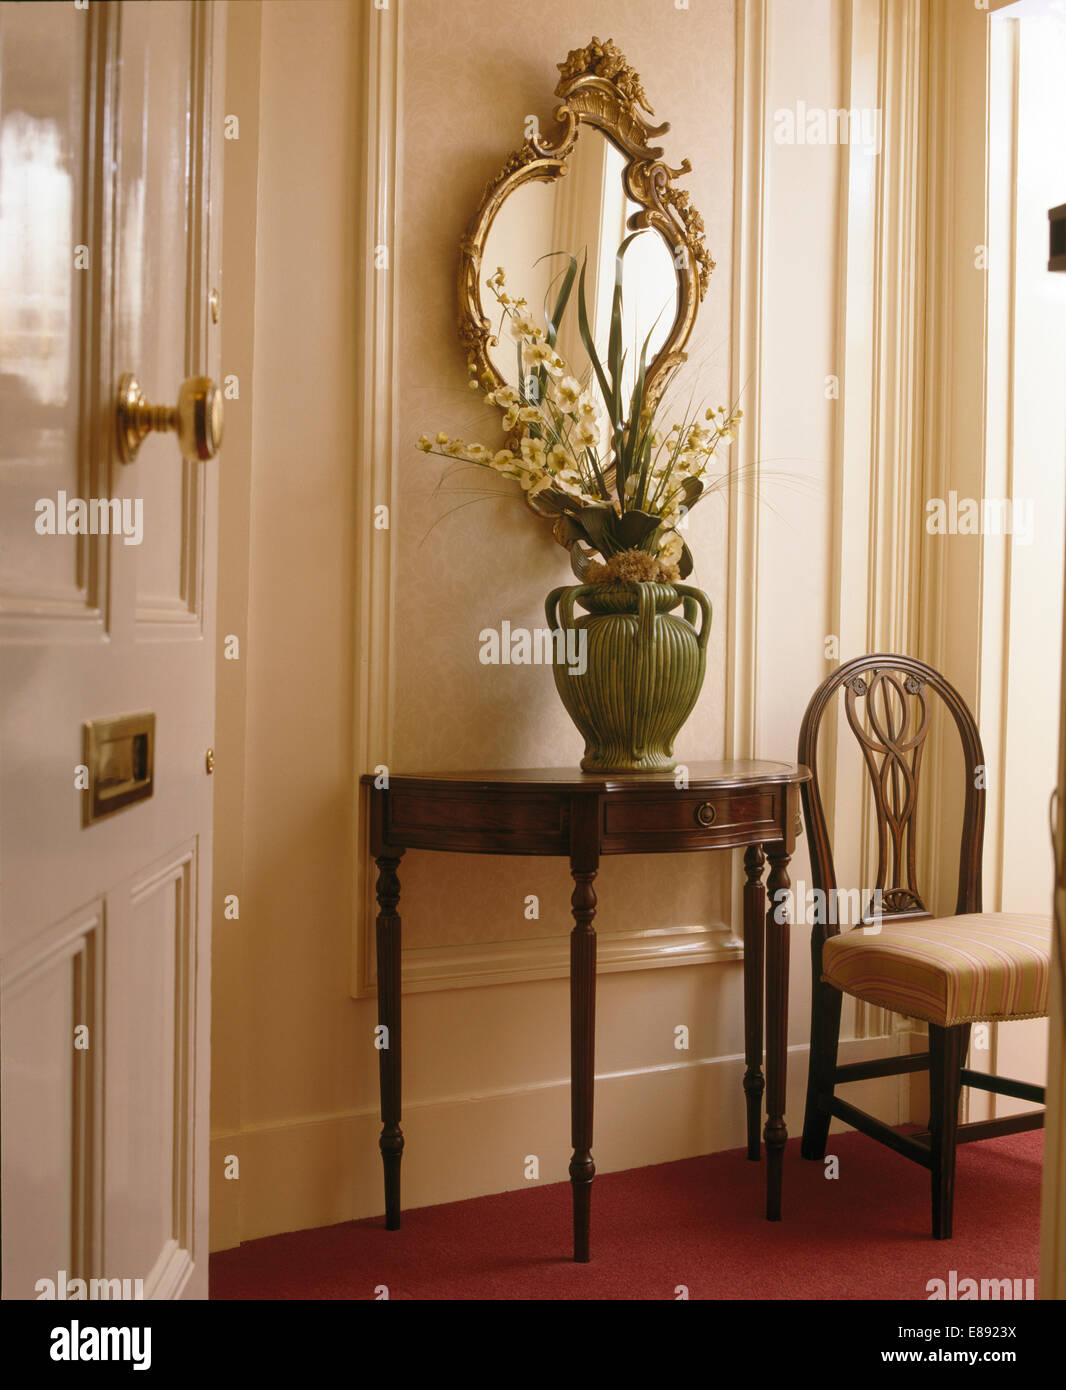 Antique Mirror Above Console Table With Gladioli In Large Green Pot In  Panelled Hall